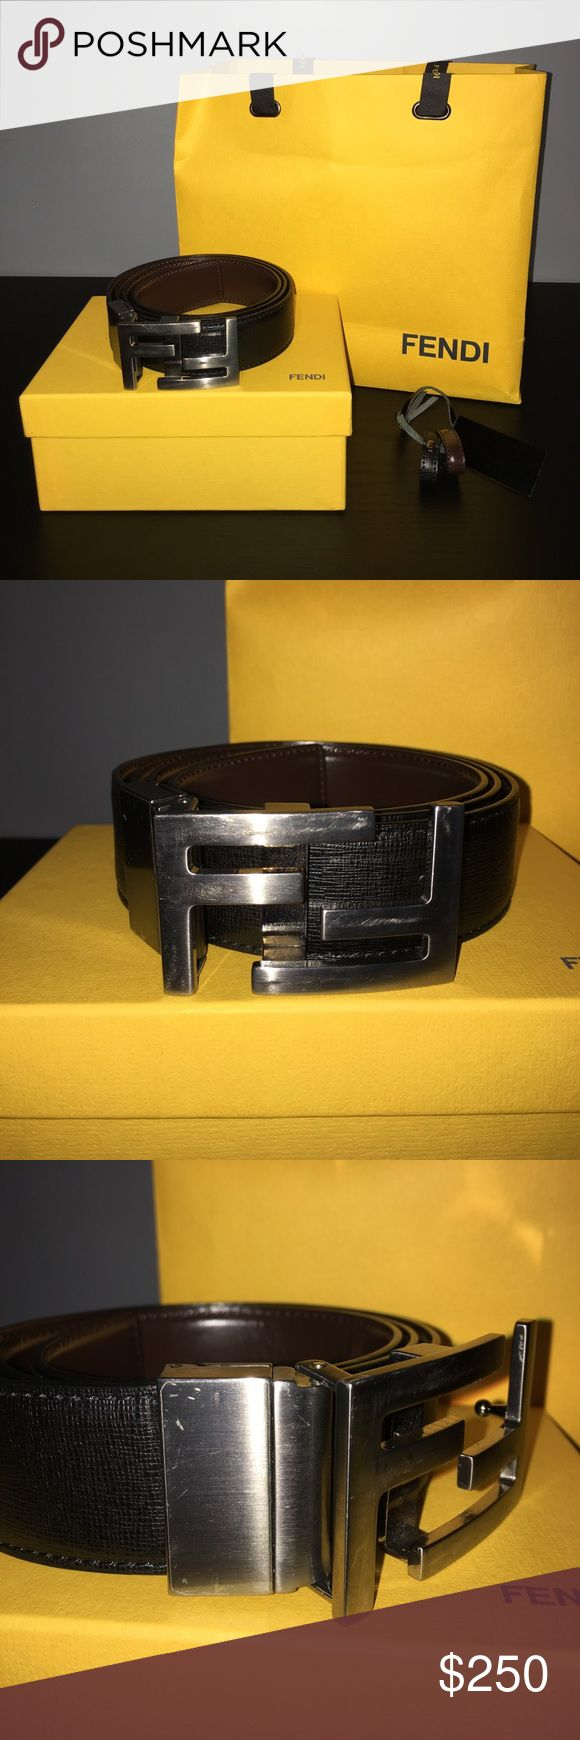 Fendi Reversible Belt Mens Fendi Belt. 100% Authentic. I do not have the receipt anymore. Comes with original shipping bag and box. Leather tags included. Selling off my old designer. Wear and tear, small scratches on buckle. Leather on both sides in great condition. Reversible belt in chocolate brown to black combination. Double F logo-shaped buckle with cufflink closure and ruthenium finish. Made in Italy. 95cm. Fits 32-34 pants size Fendi Accessories Belts